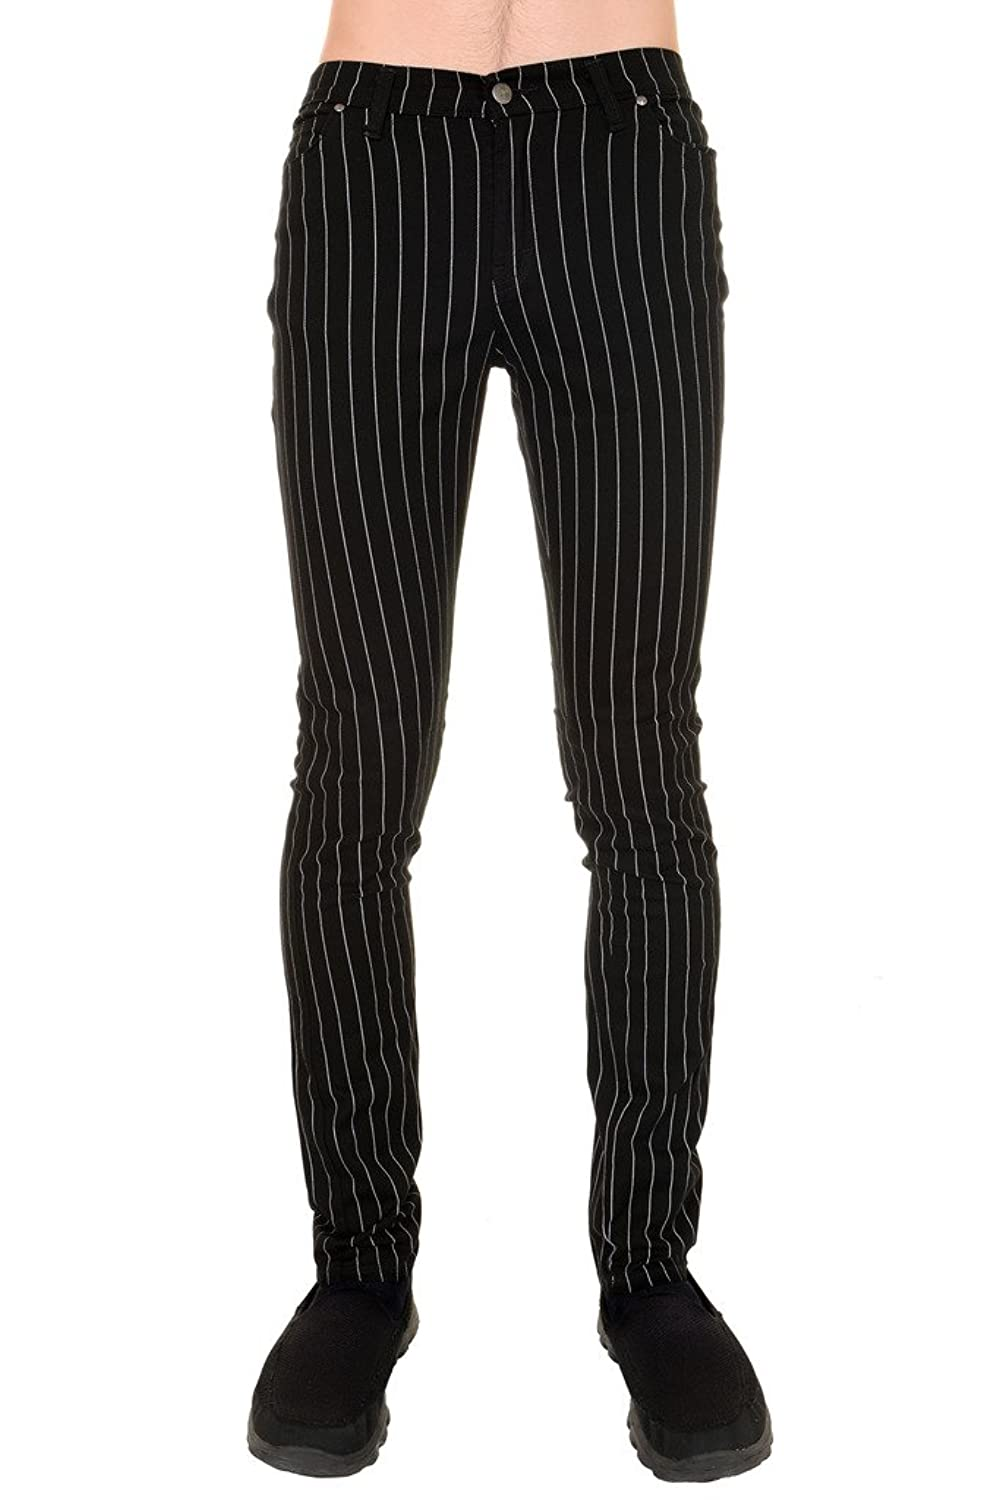 1960s Men's Clothing, 70s Men's Fashion Mens Indie Vintage Retro 60s 70s Mod Black White Pin Striped Stretch Skinny Jeans $51.95 AT vintagedancer.com